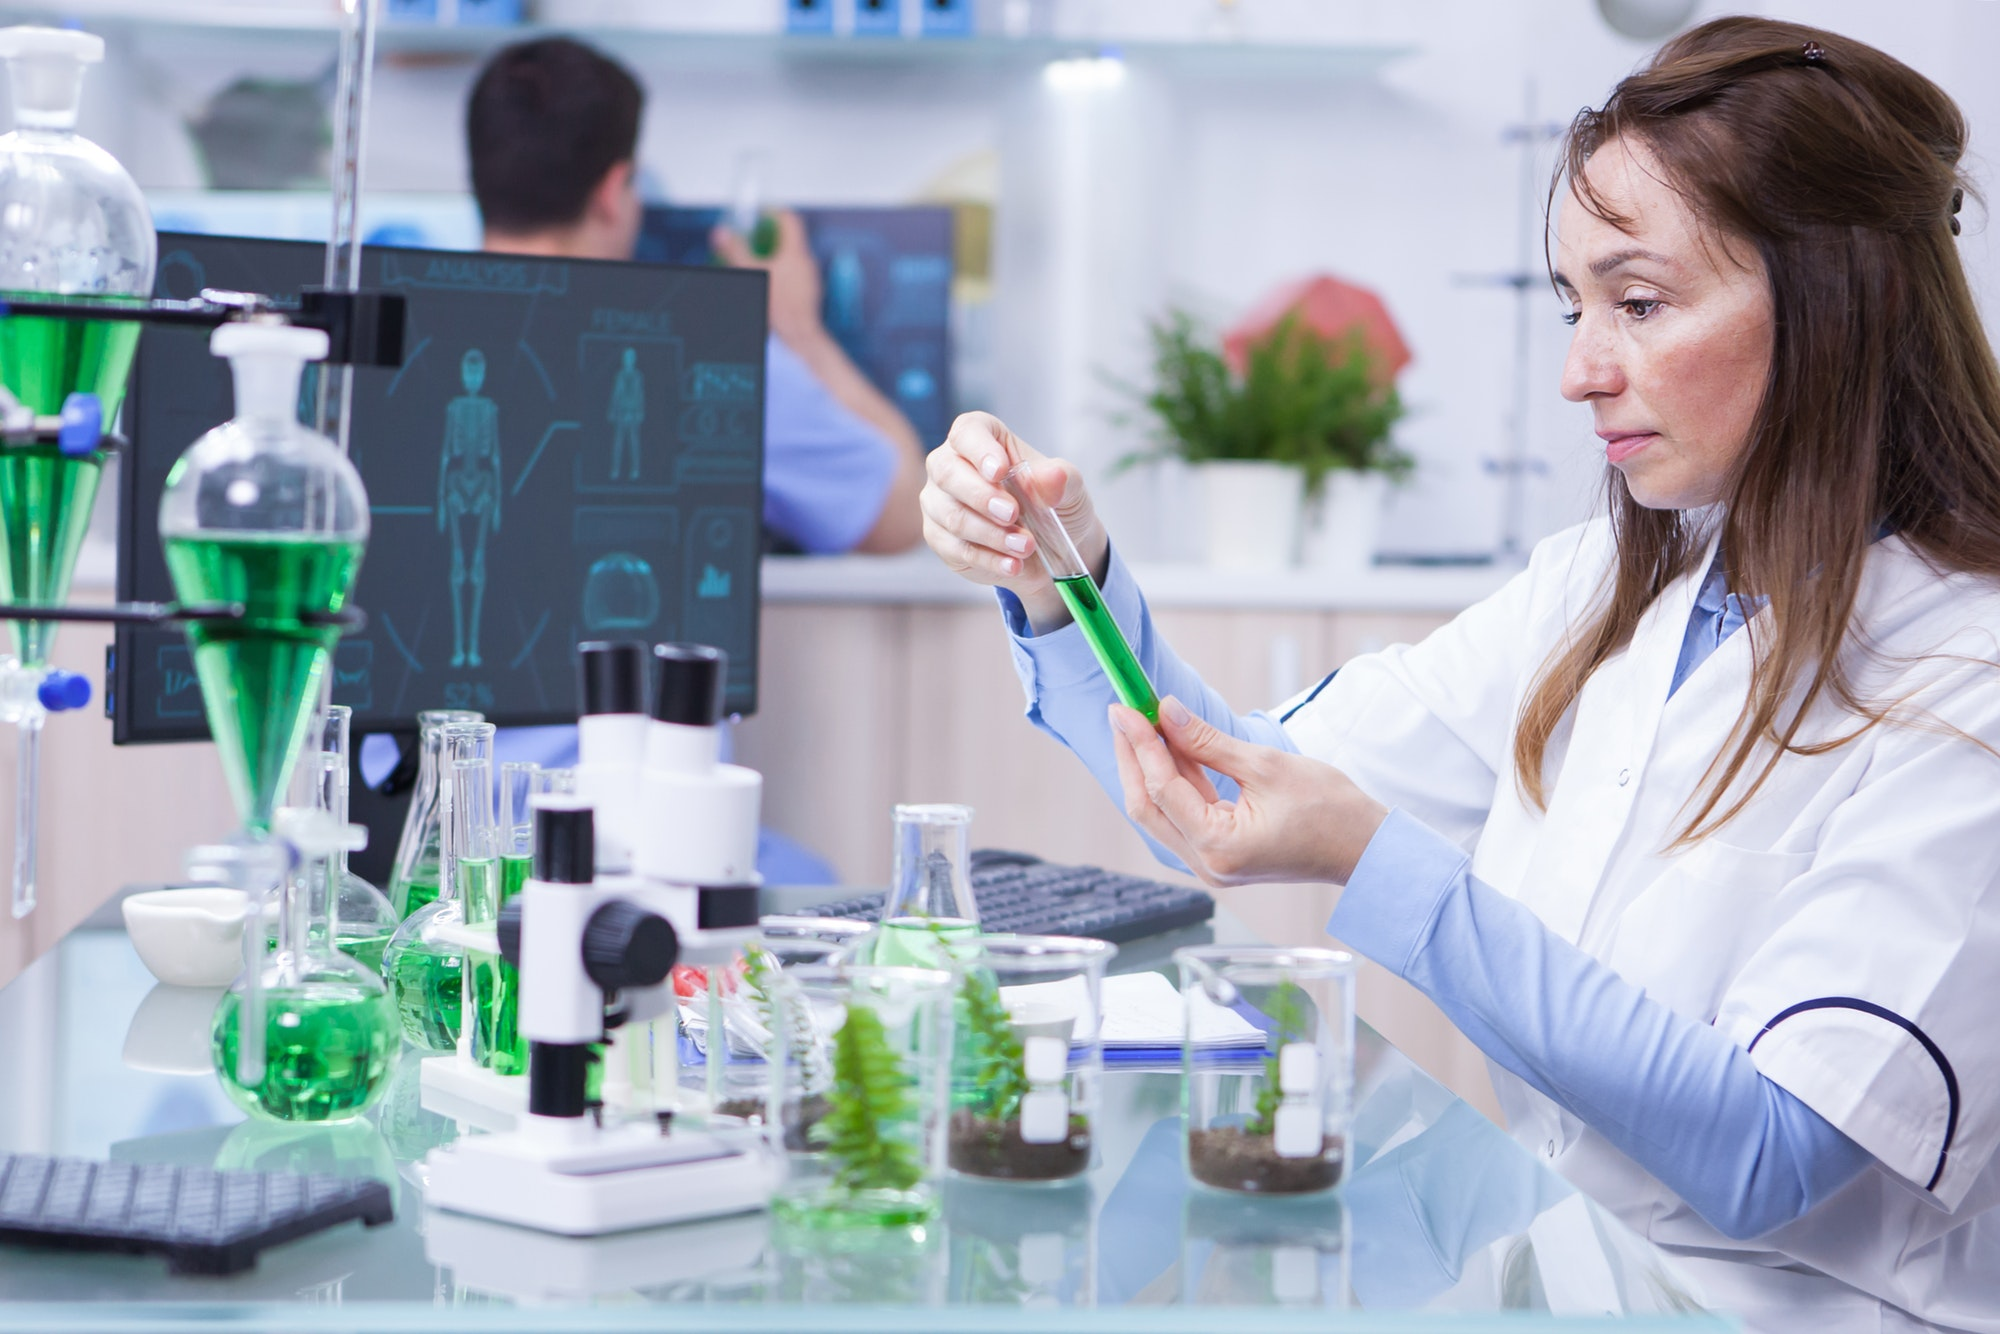 Side view of female scientist doing research on plants holding a green solution in a test tube